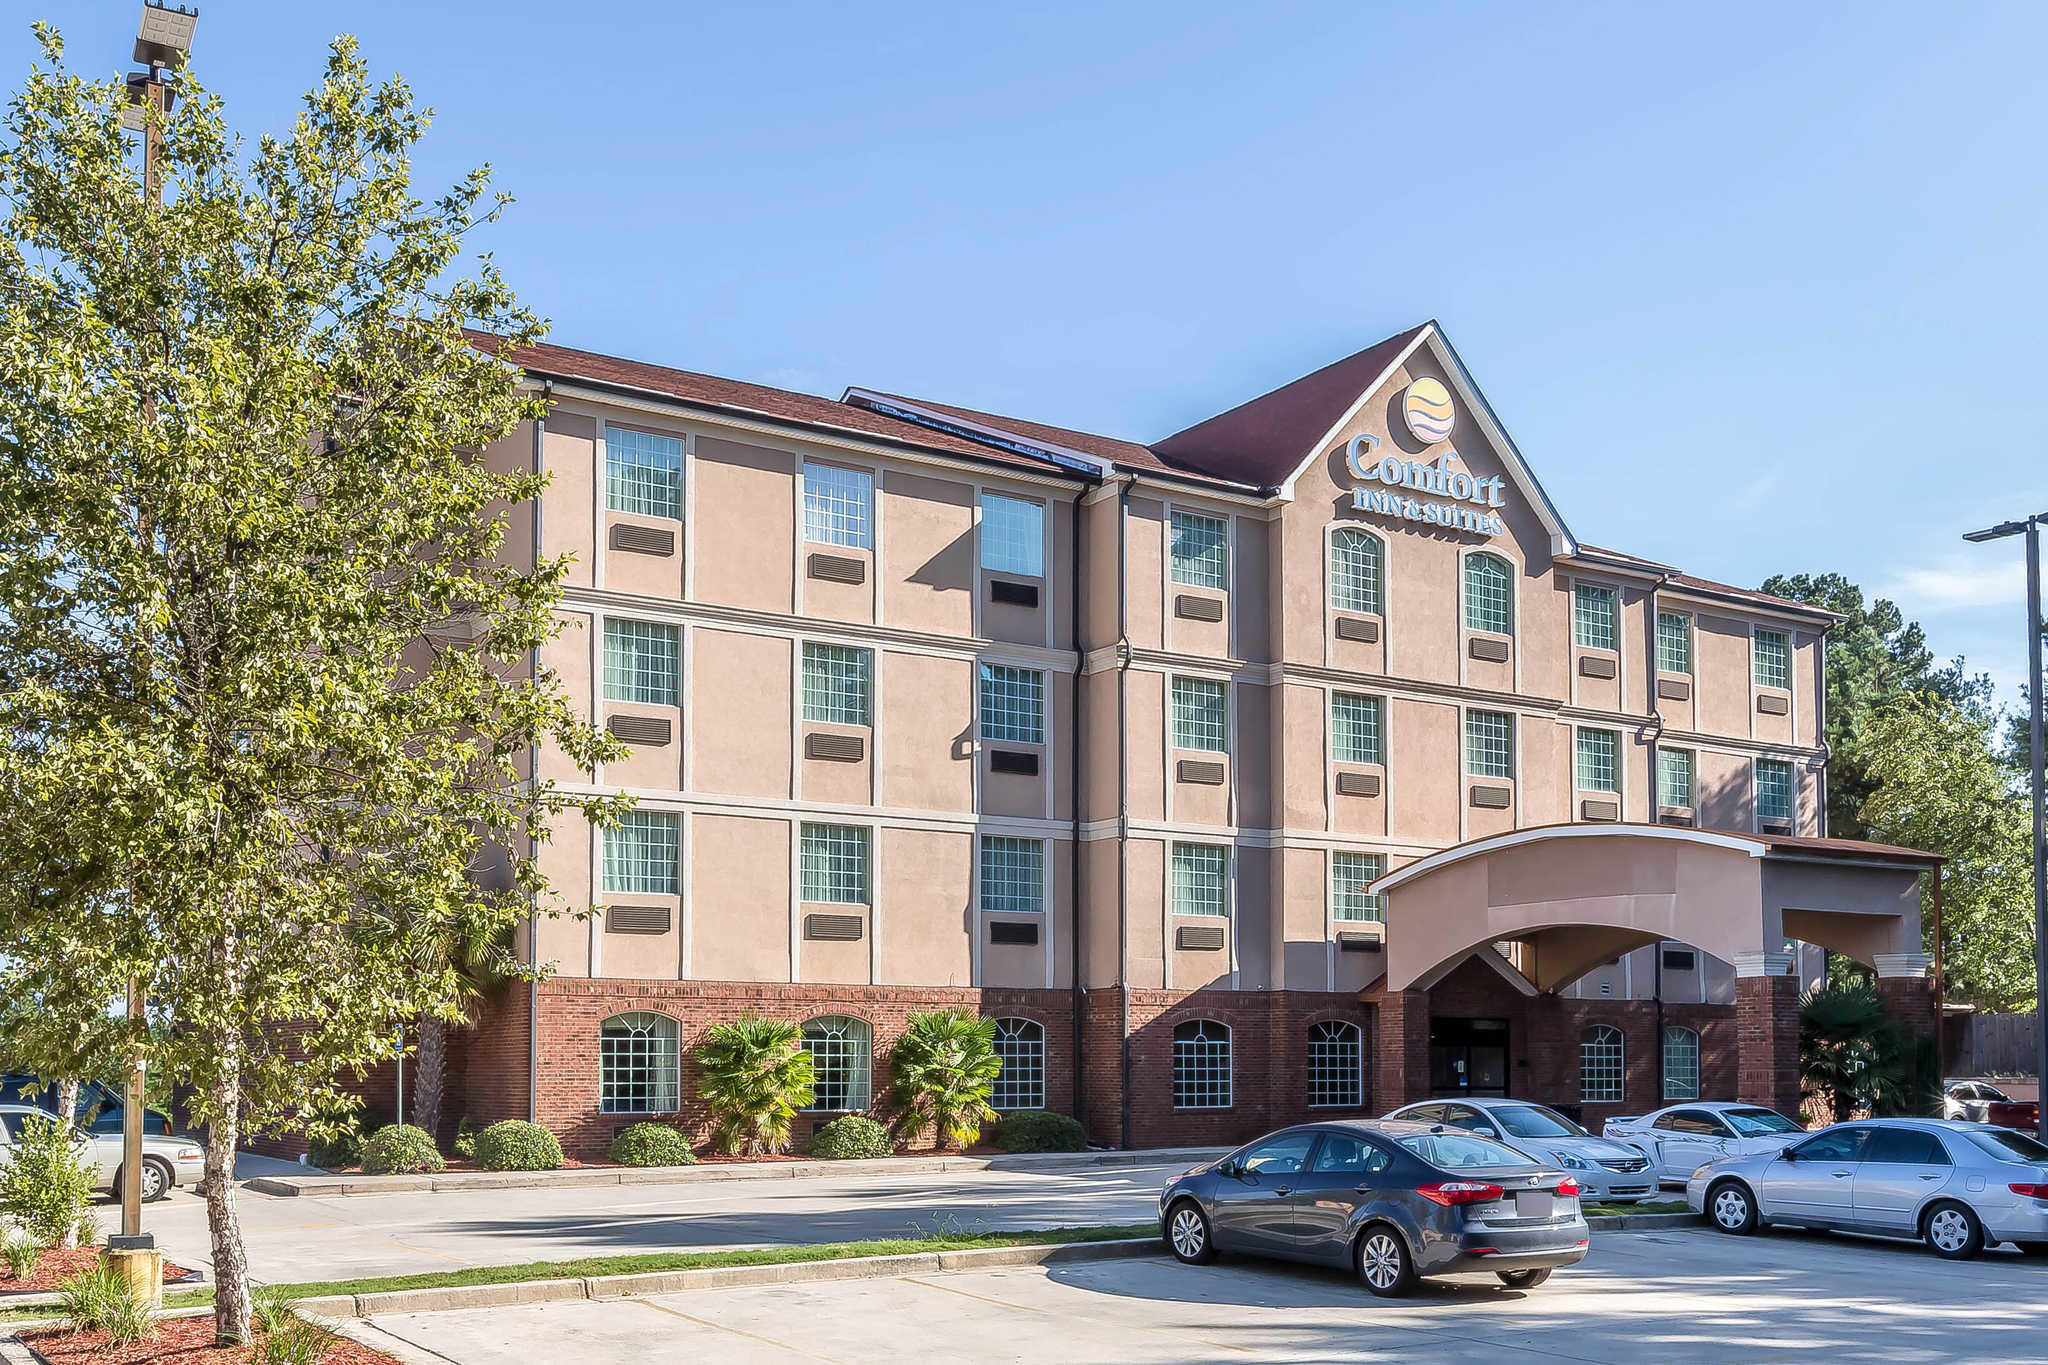 Comfort inn suites coupons villa rica ga near me 8coupons for Hotels 8 near me